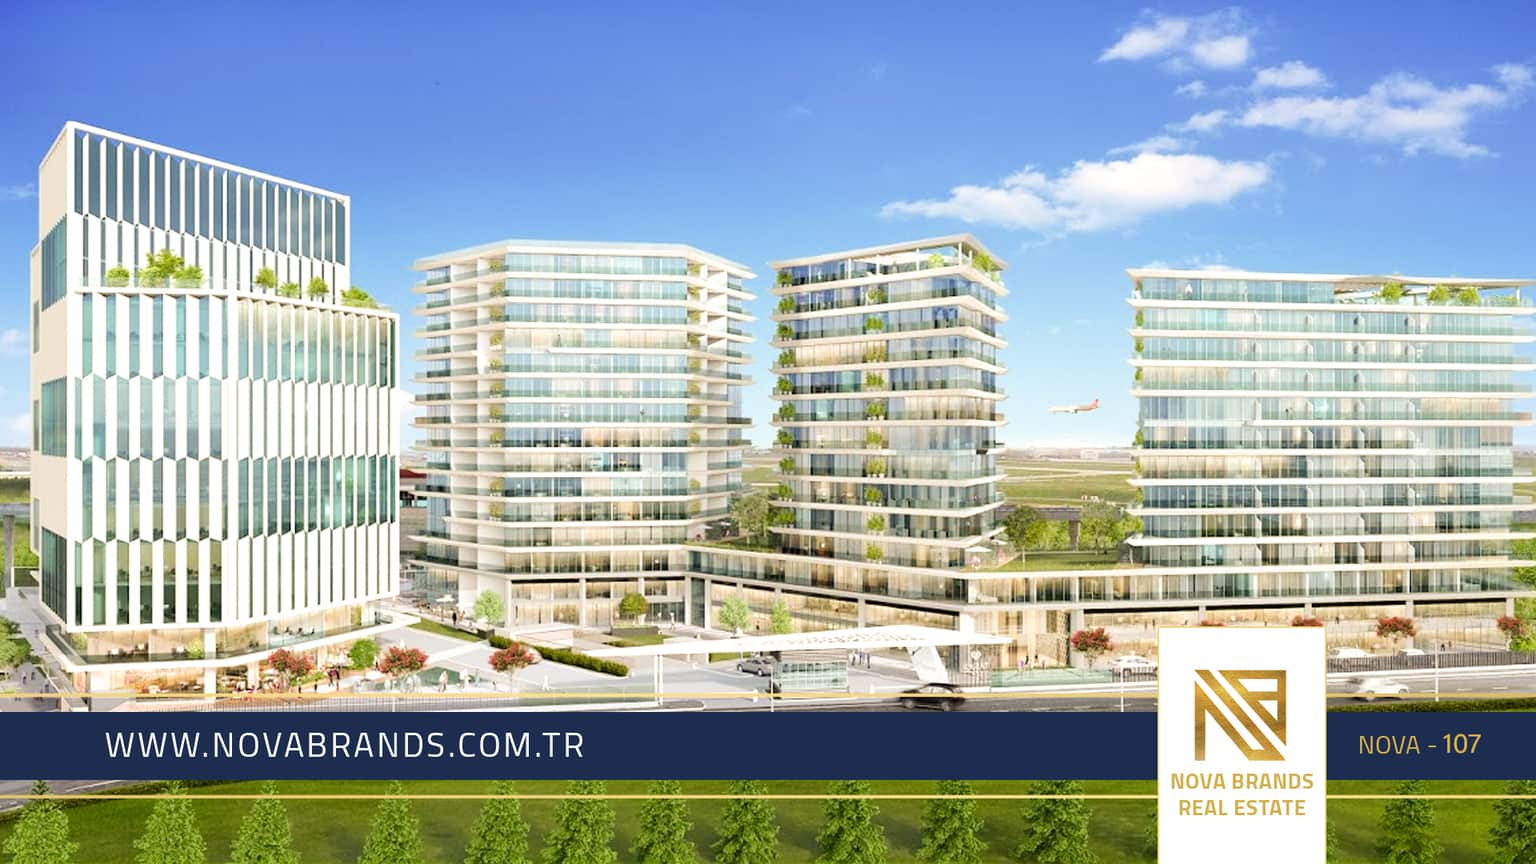 A residential and investment project in Basin Express